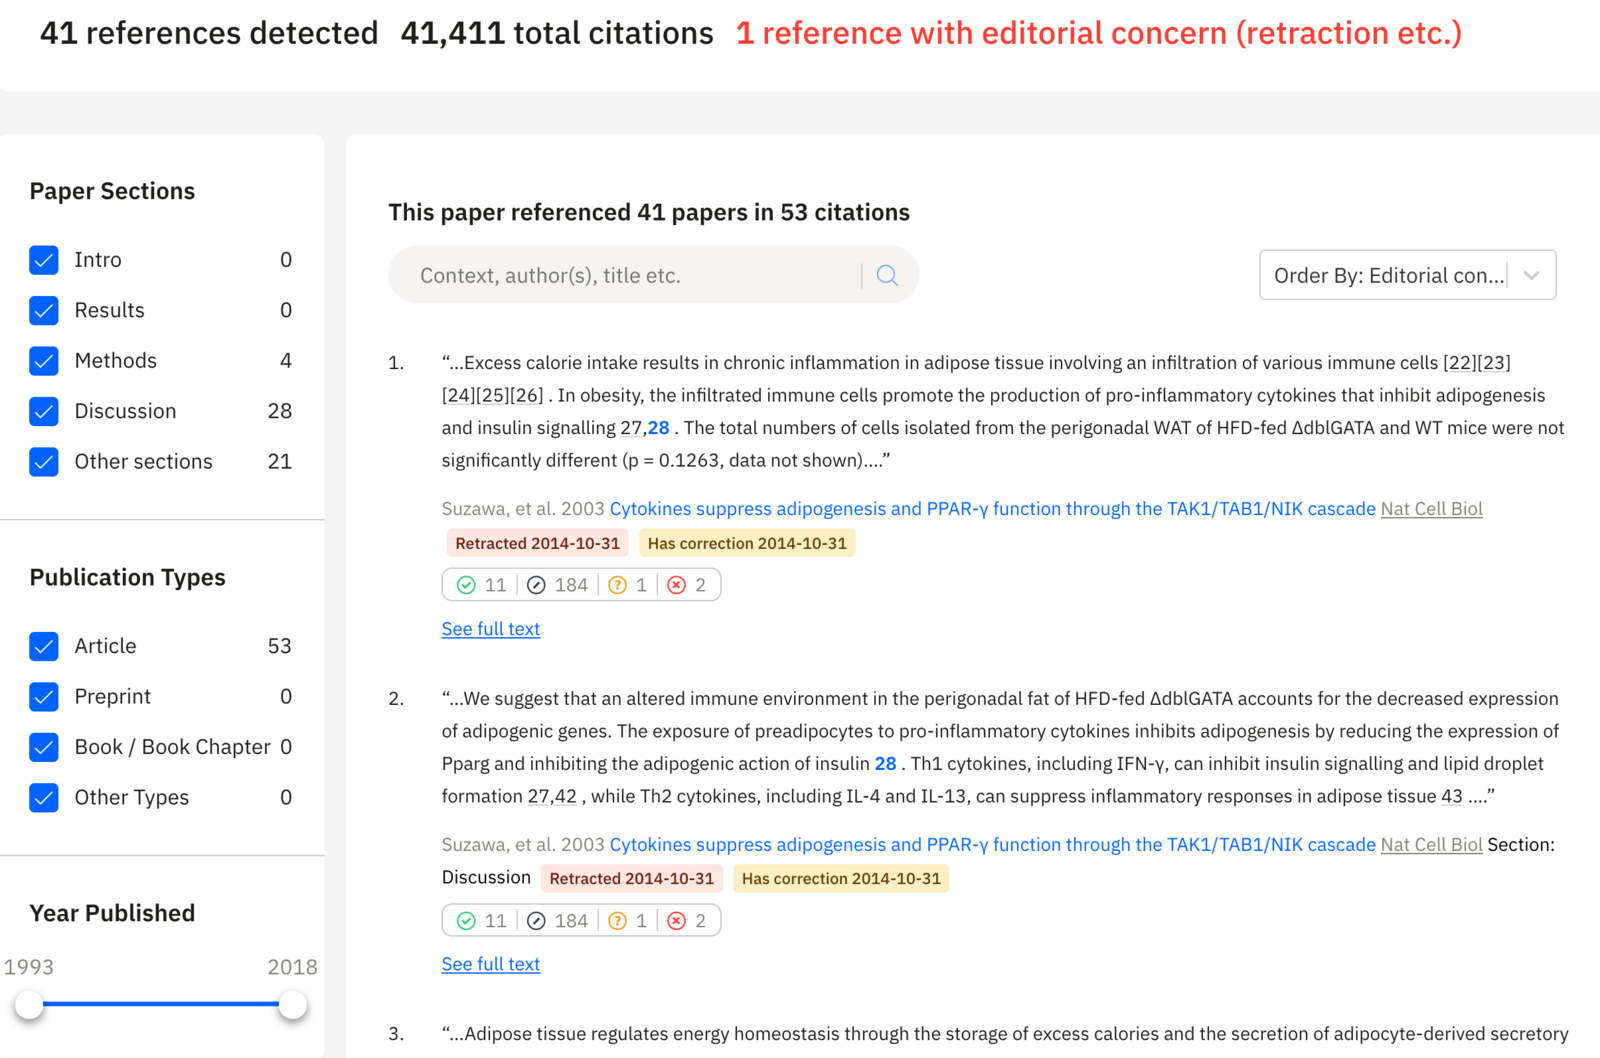 Reference Check output showing how the uploaded manuscript cites each of its references, along with other information about each reference (editorial notices, highly disputed, and so on).